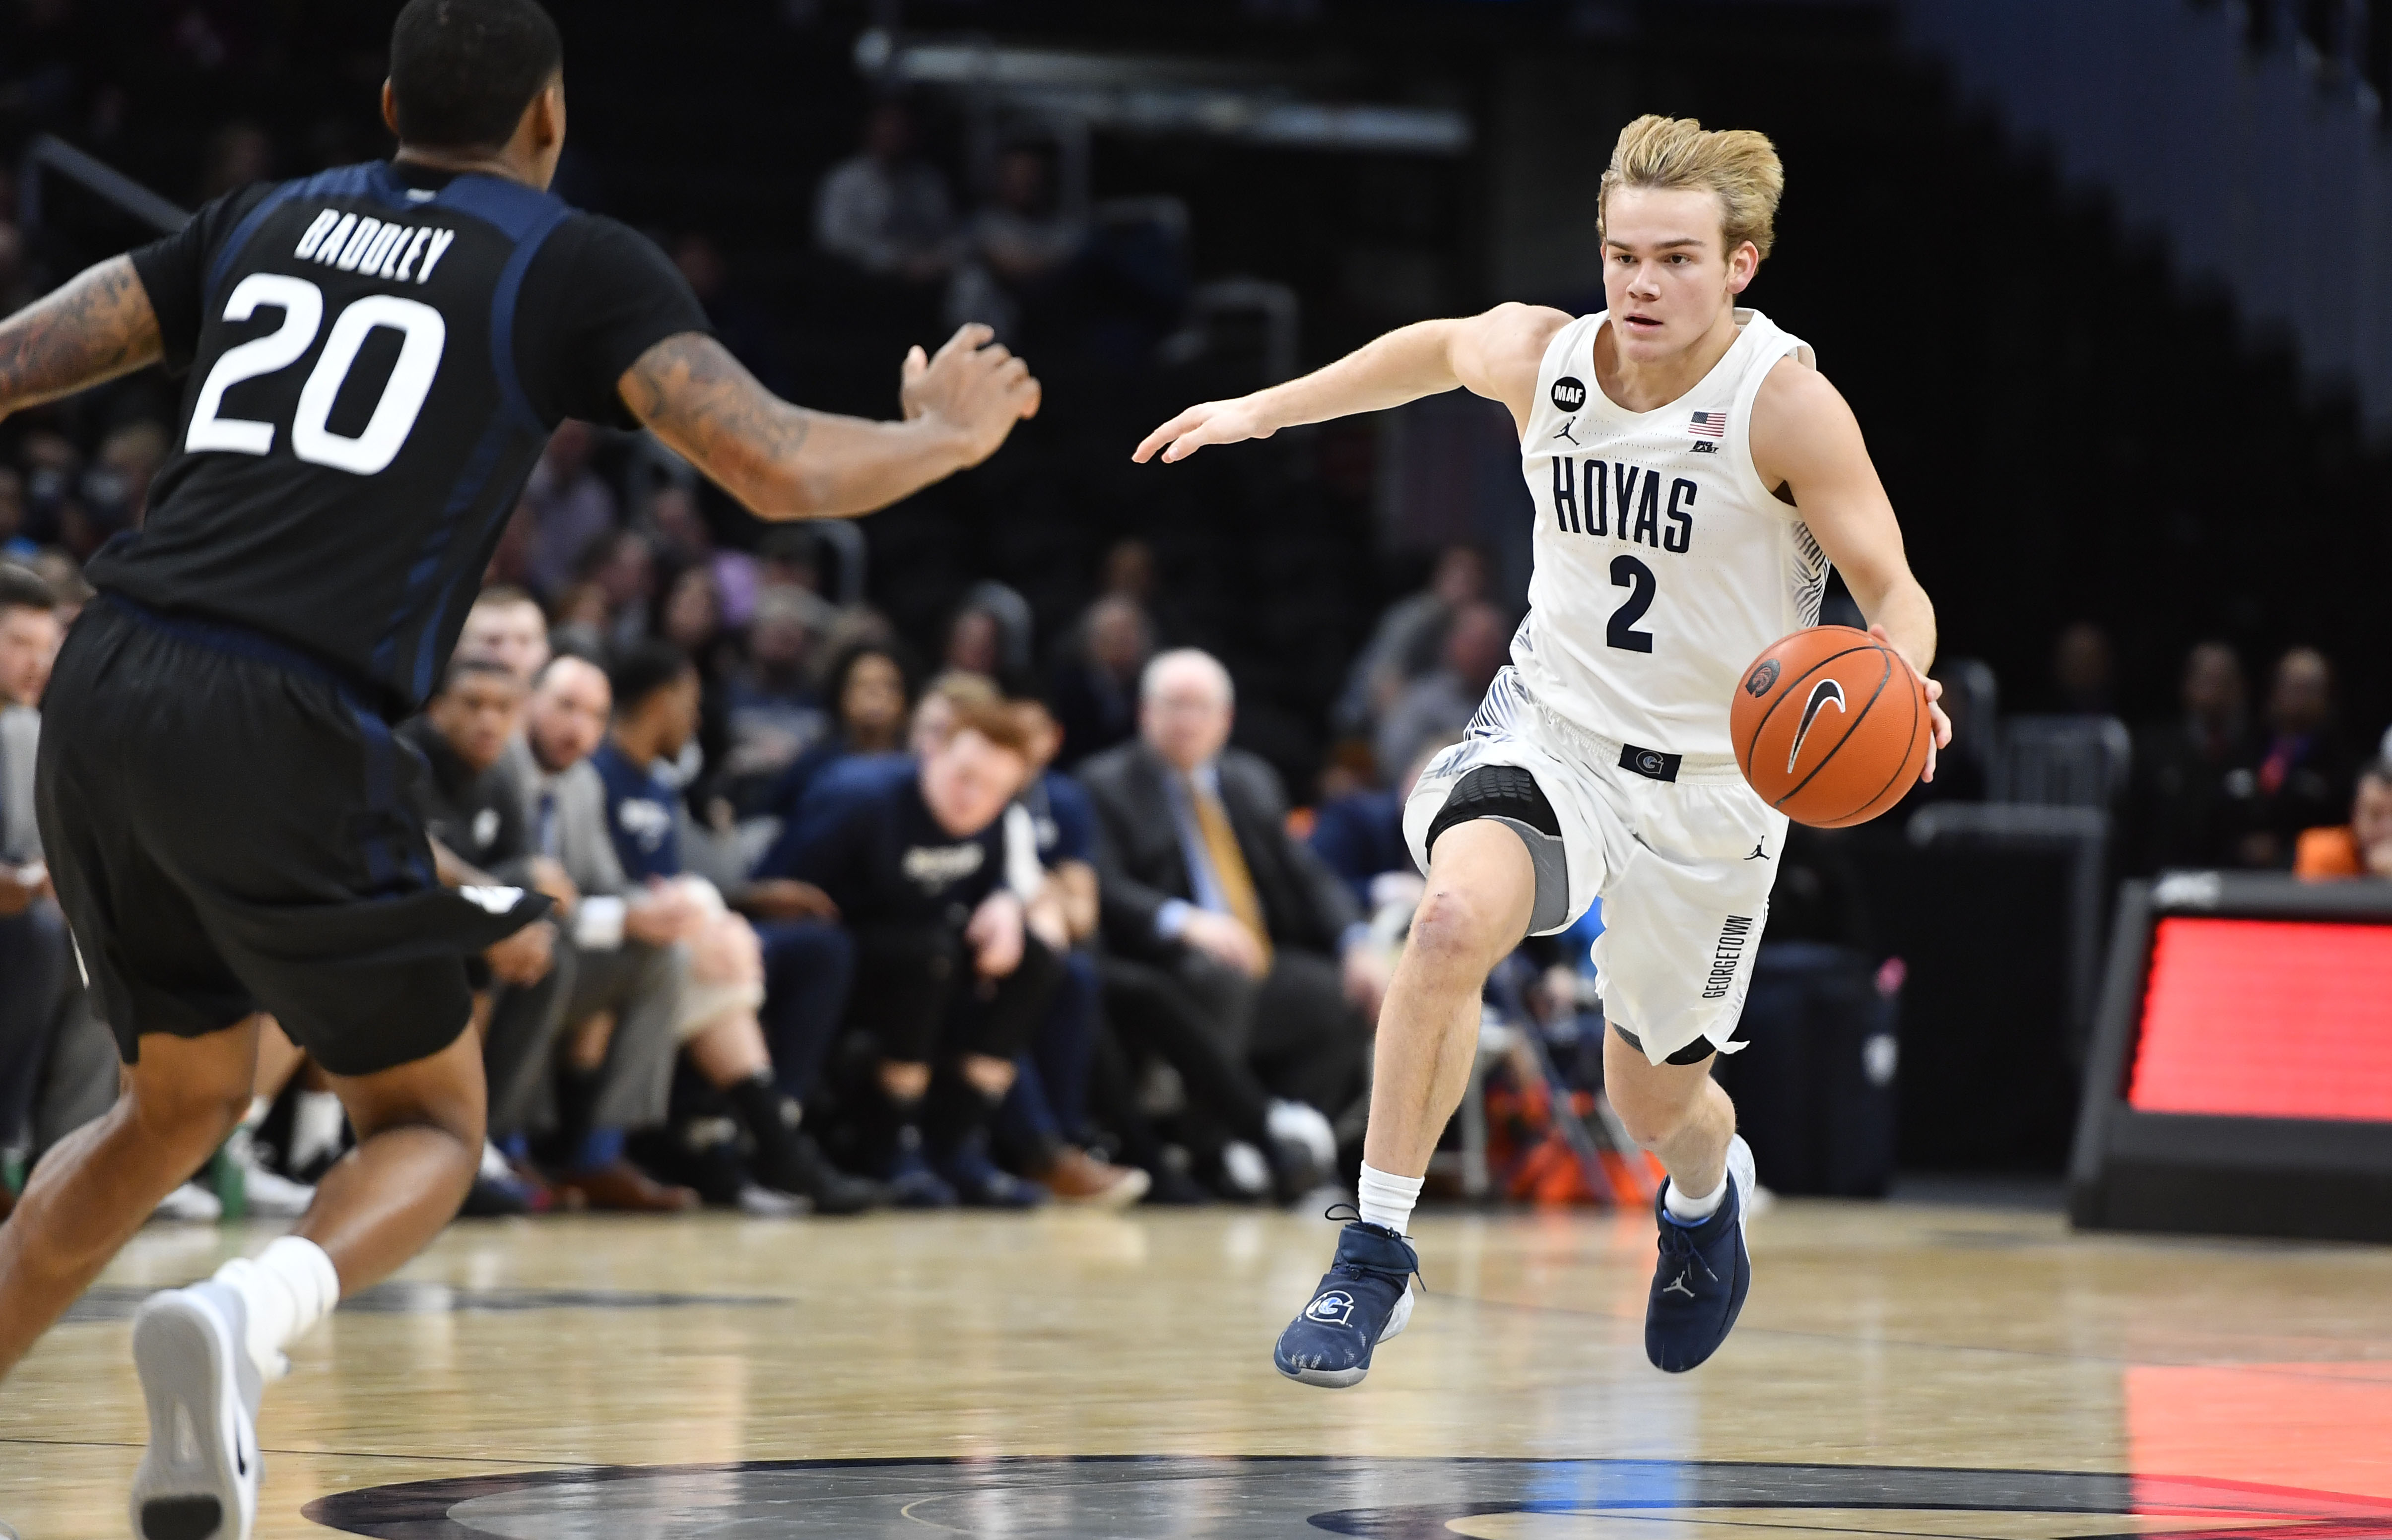 Georgetown Hoyas guard Mac McClung advances the ball as Butler Bulldogs guard Henry Baddley defends during the second half at Capital One Arena.